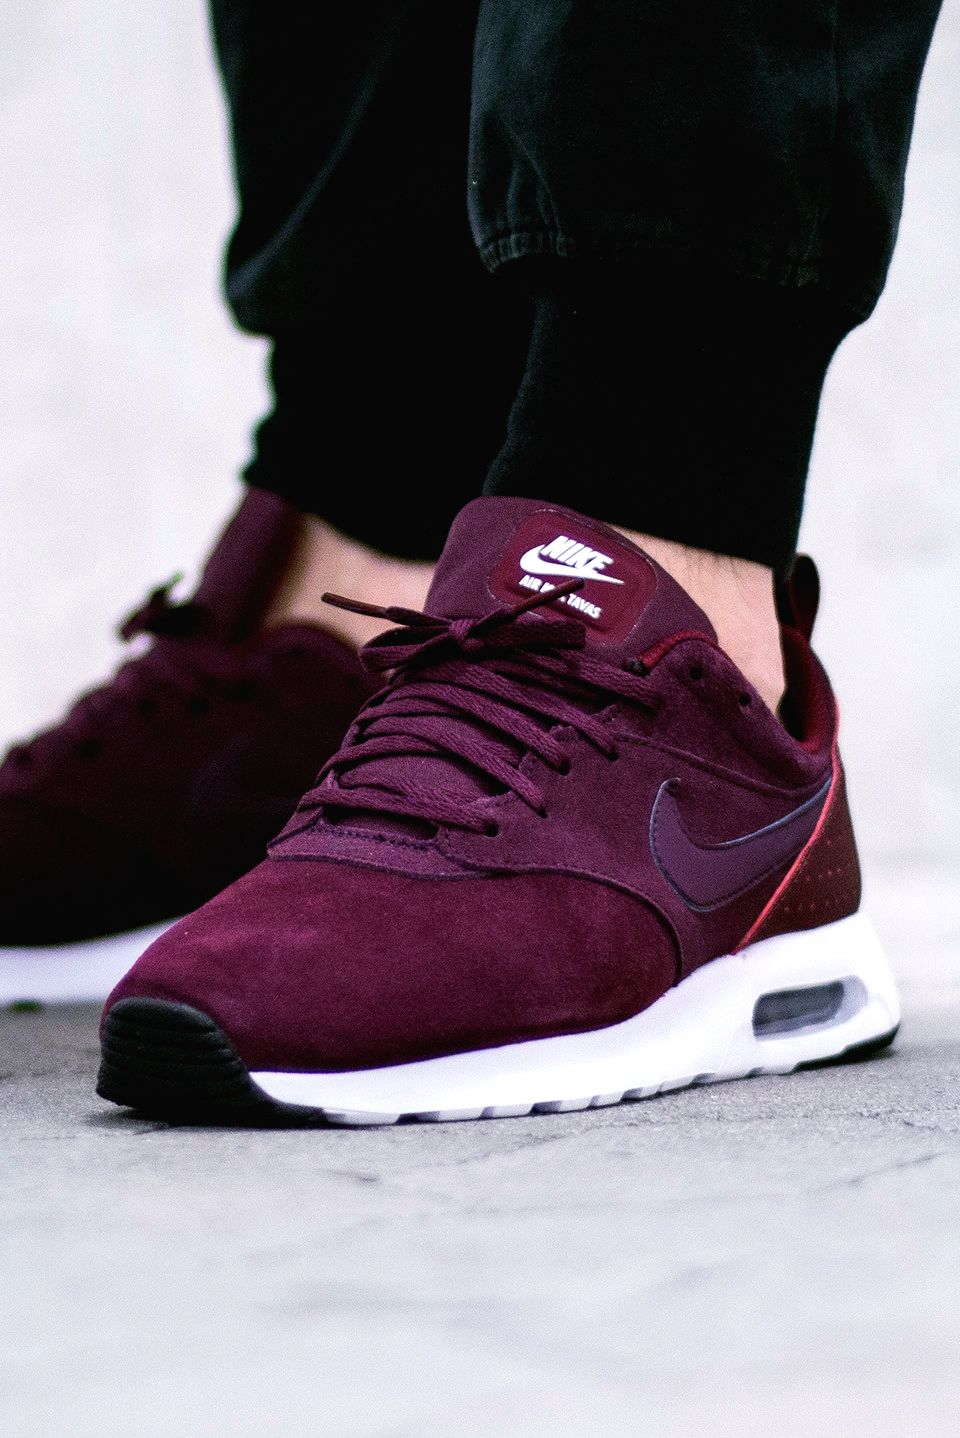 factory price 1fa06 fa89a Nike Air Max Tavas LTR Night Maroon (via Kicks-daily.com)